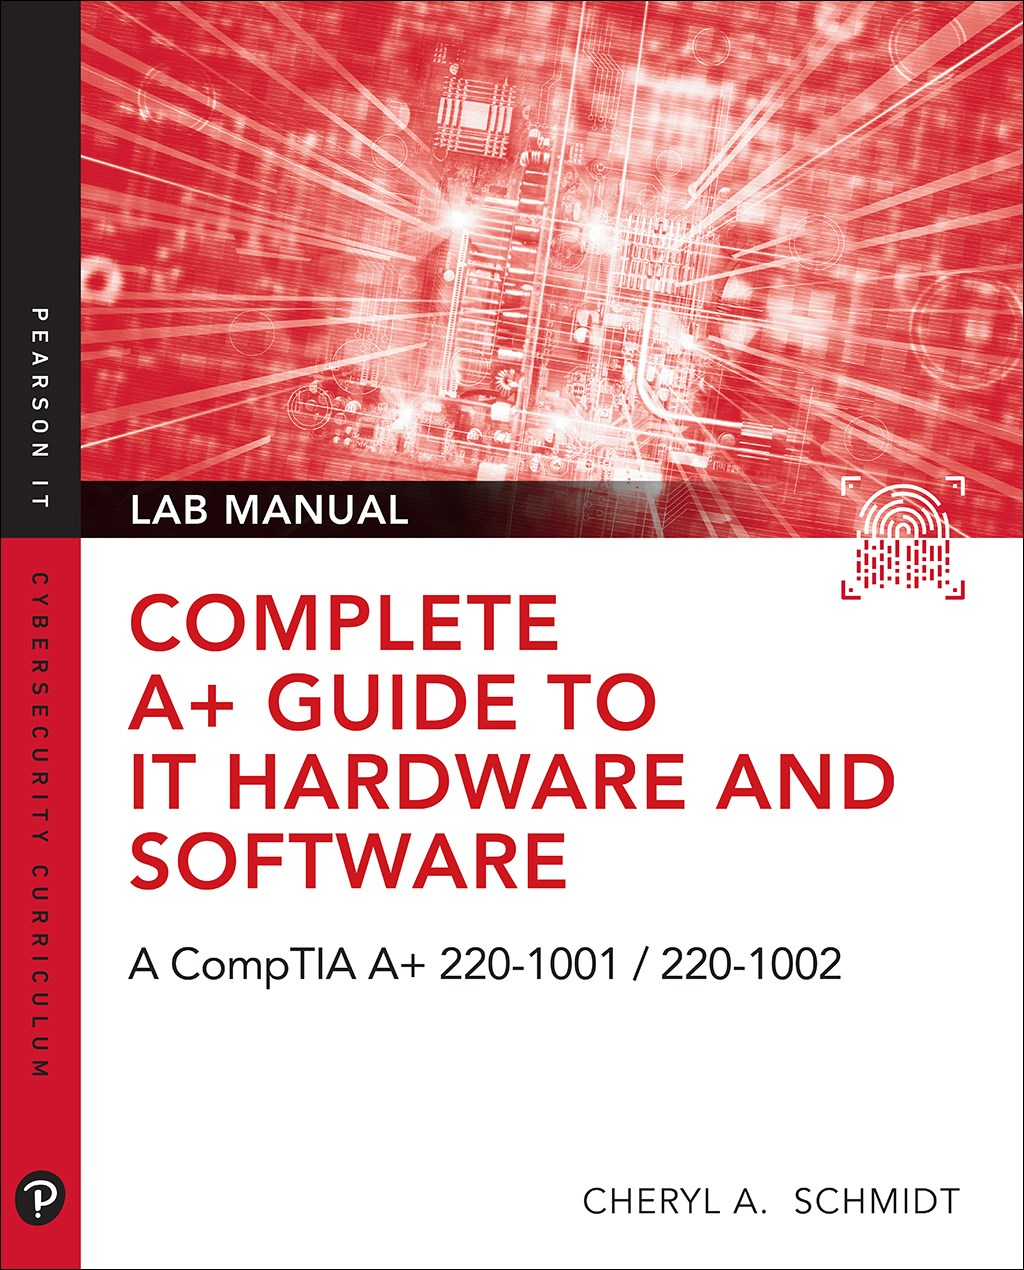 Complete A+ Guide to IT Hardware and Software Lab Manual: A CompTIA A+ 220-1001 / 220-1002 Textbook, 8th Edition